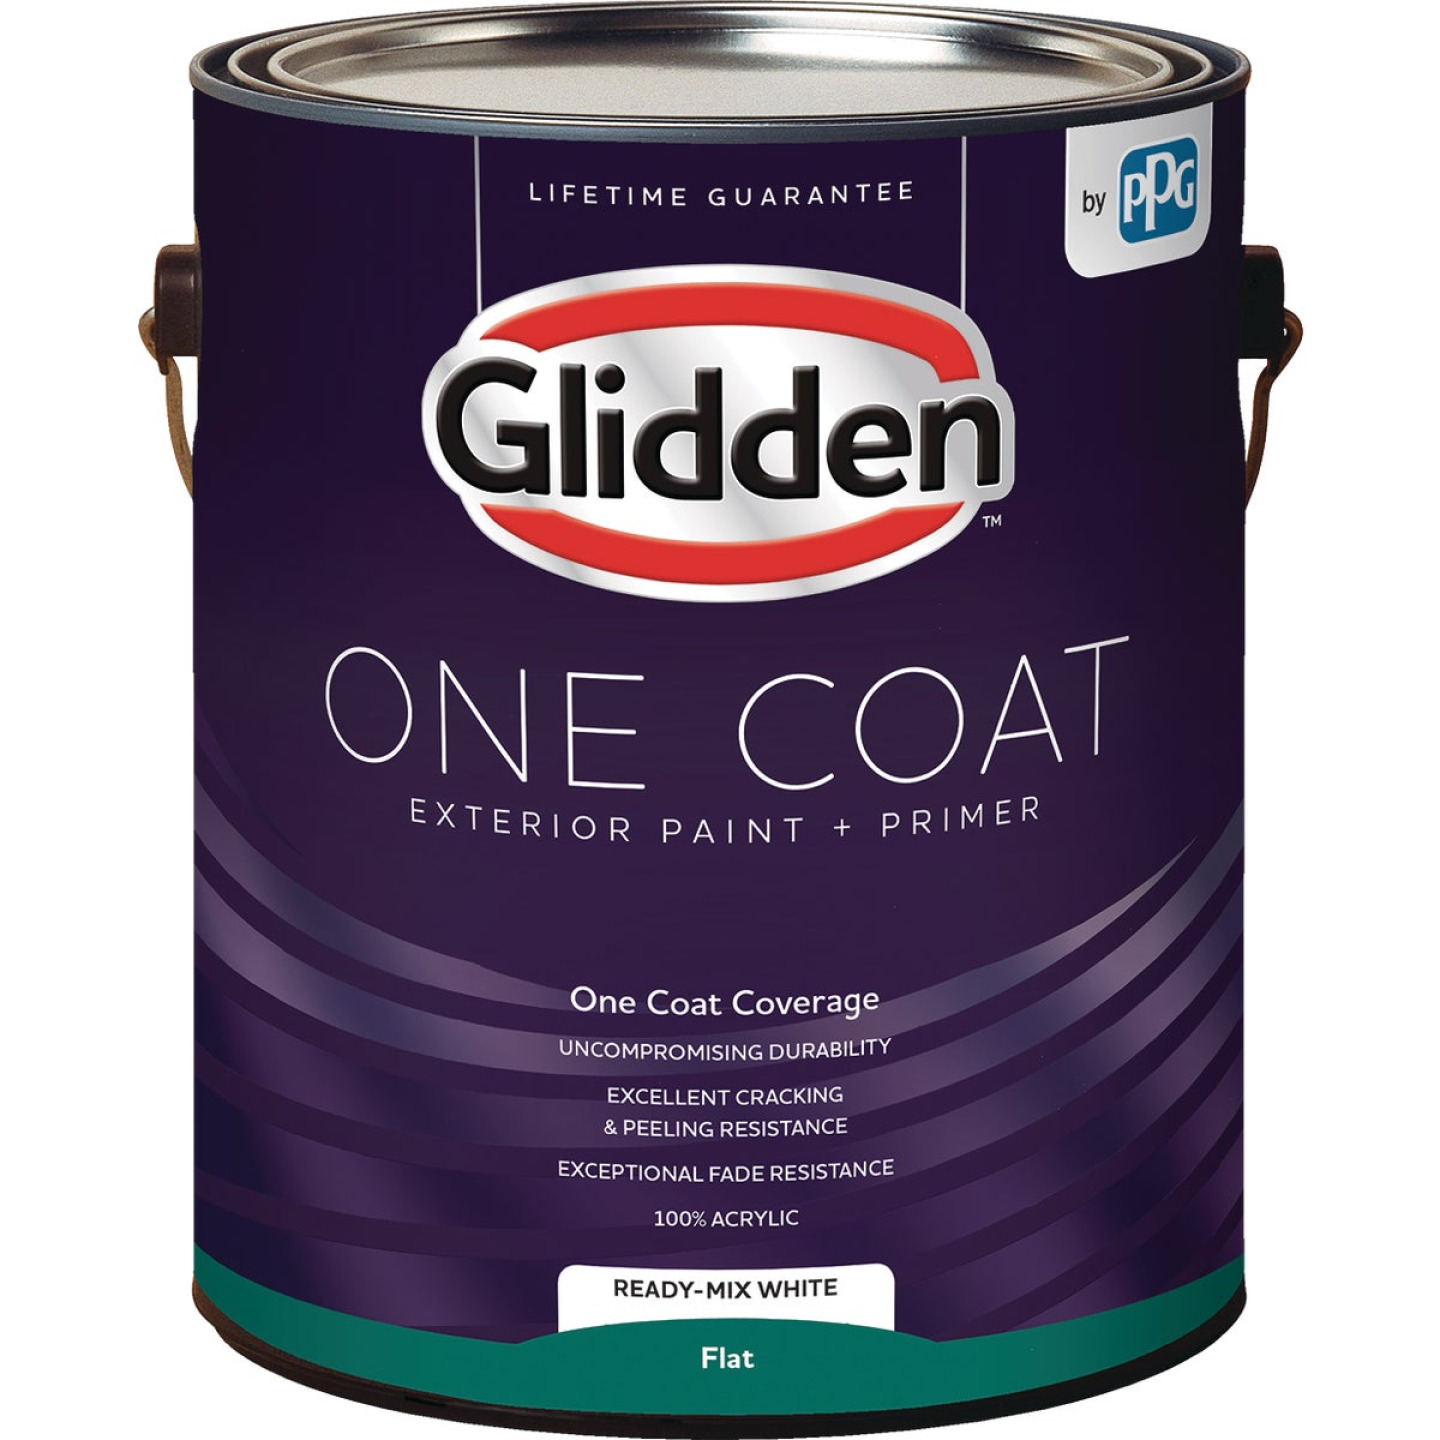 Glidden One Coat Exterior Paint + Primer Flat Ready Mix White 1 Gallon Image 1